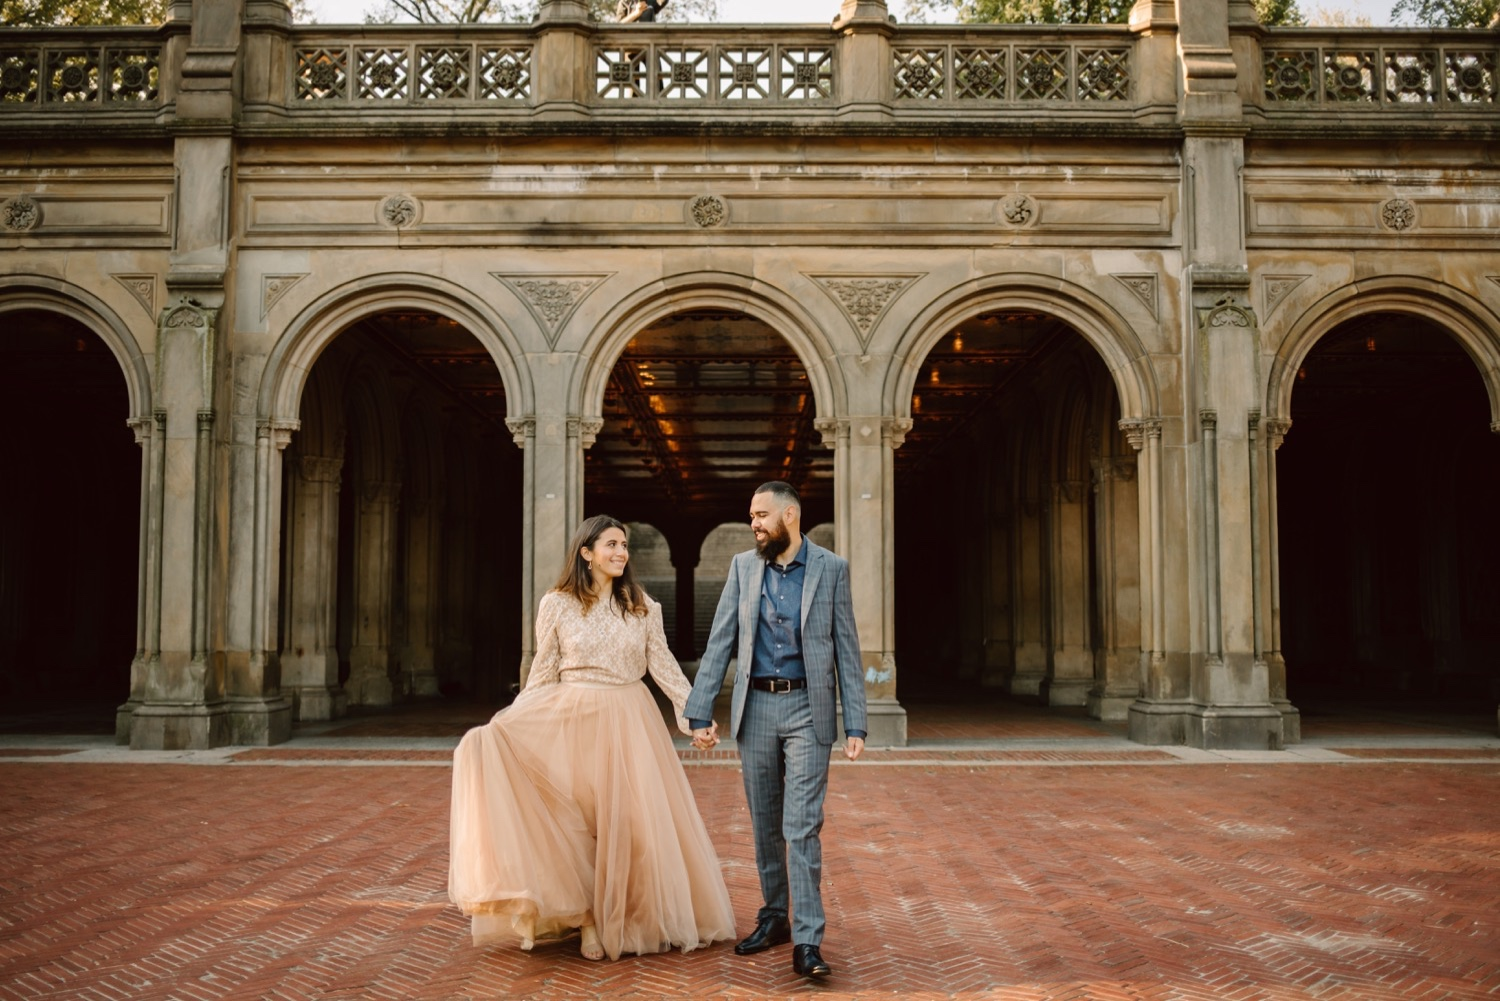 Engagement Photos in front of Bethesda Terrace at Central Park